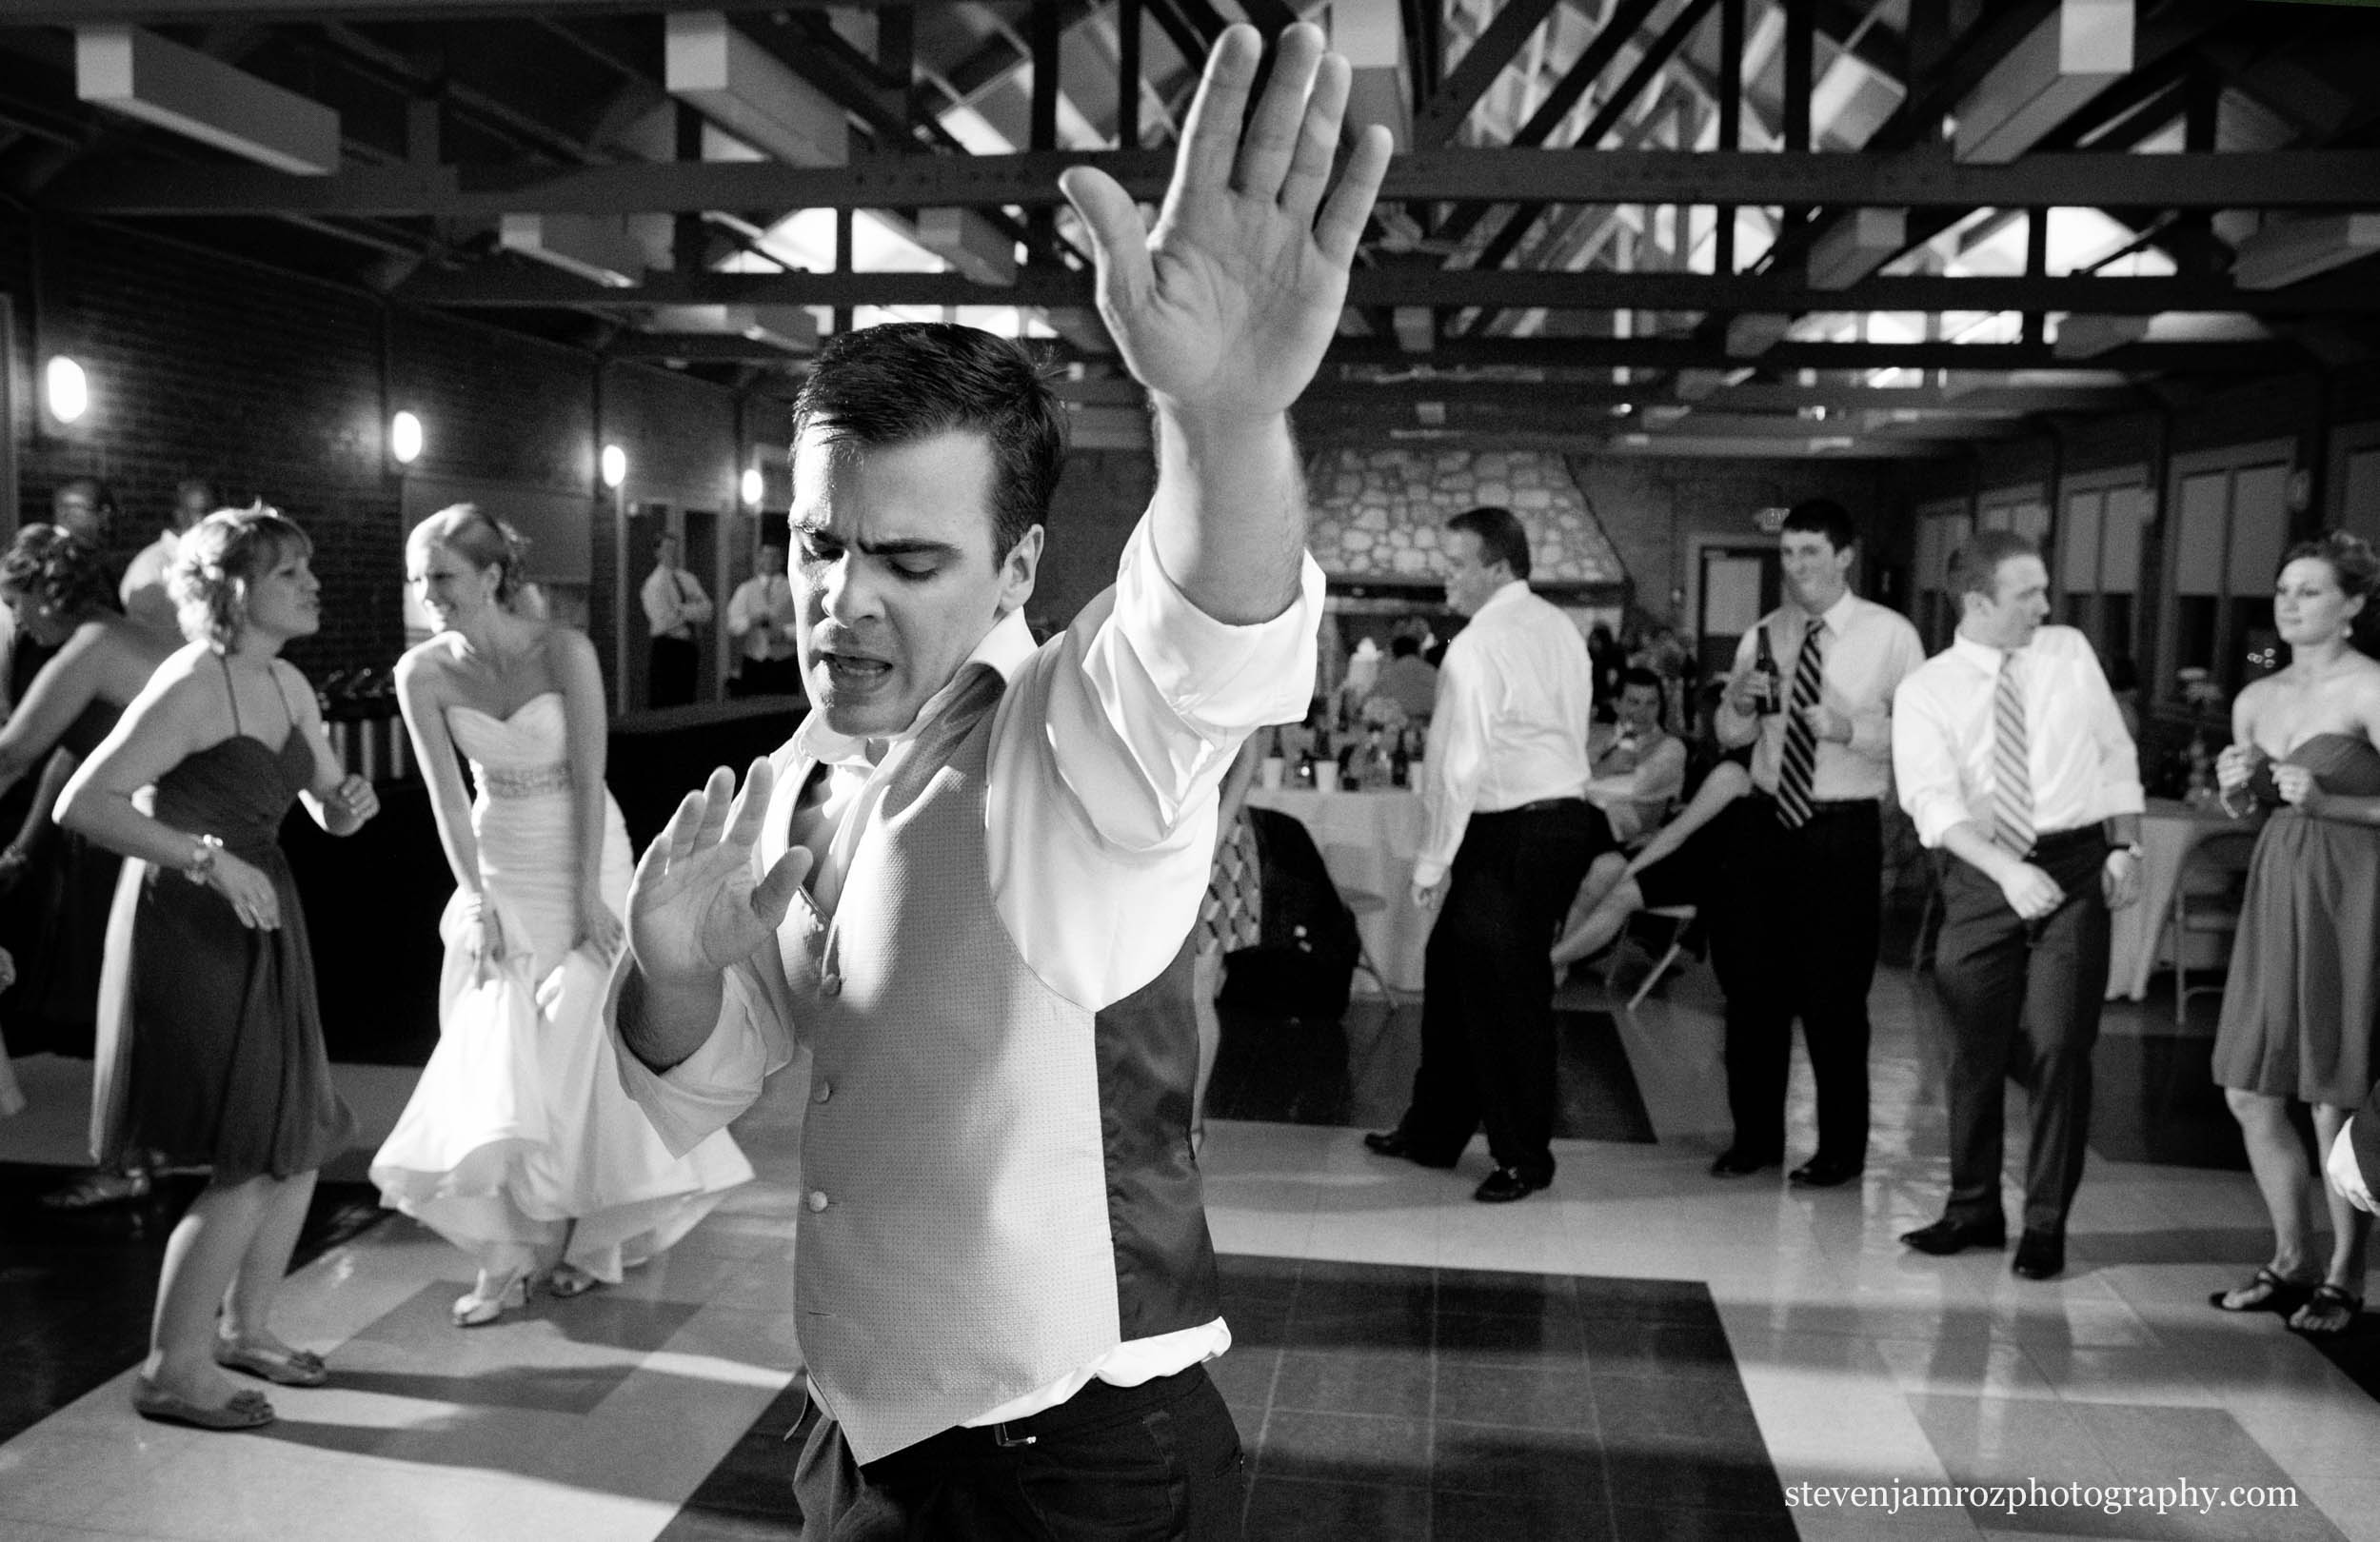 bust-a-move-wedding-dancing-raleigh-steven-jamroz-photography-0497.jpg